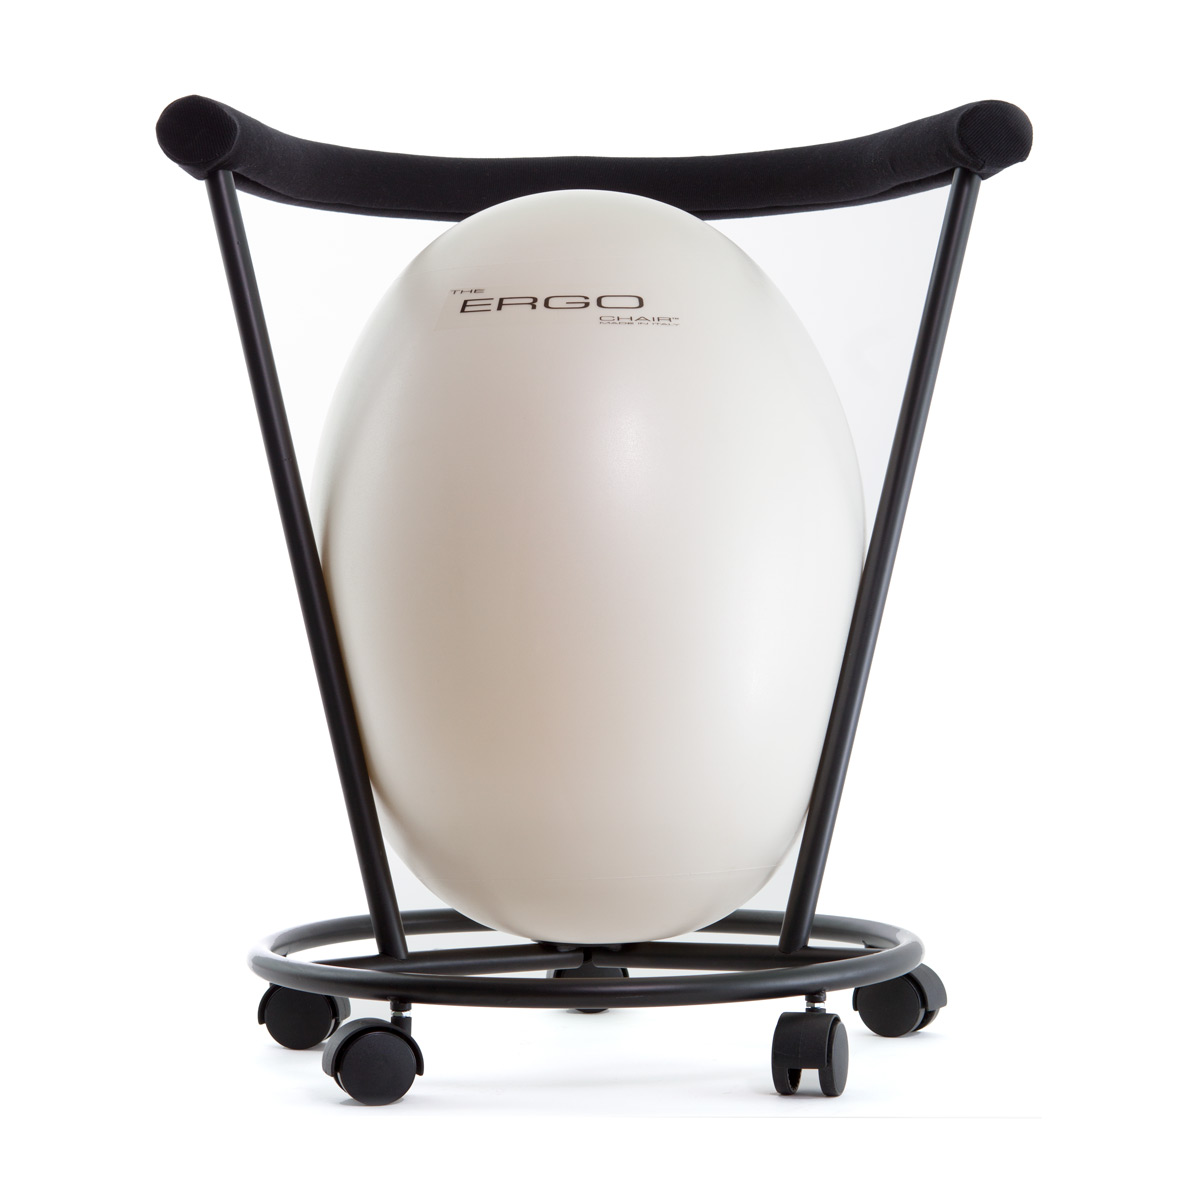 Gaiam Ultimate Balance Ball Chair review Gaiam Ultimate Balance Ball Chair review new images